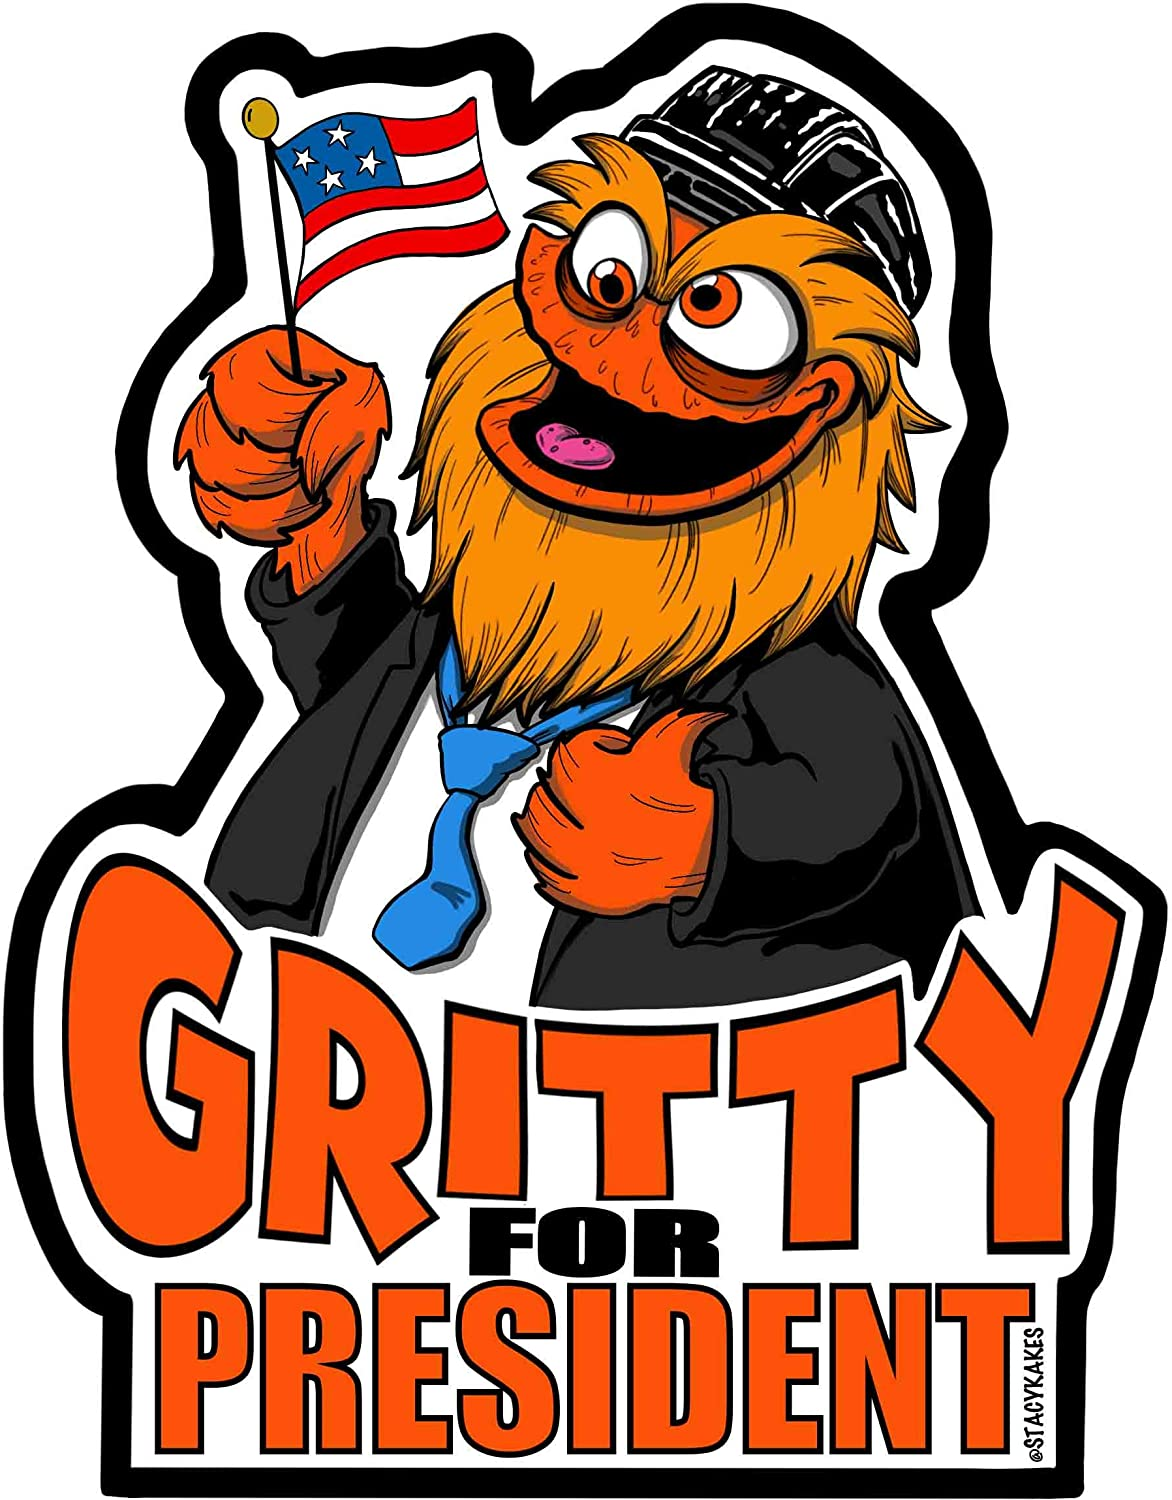 Gritty for President Philadelphia Decal - for Cars, Laptops, and More! - Use Inside or Outside - Sticks to Any Flat Smooth Surface